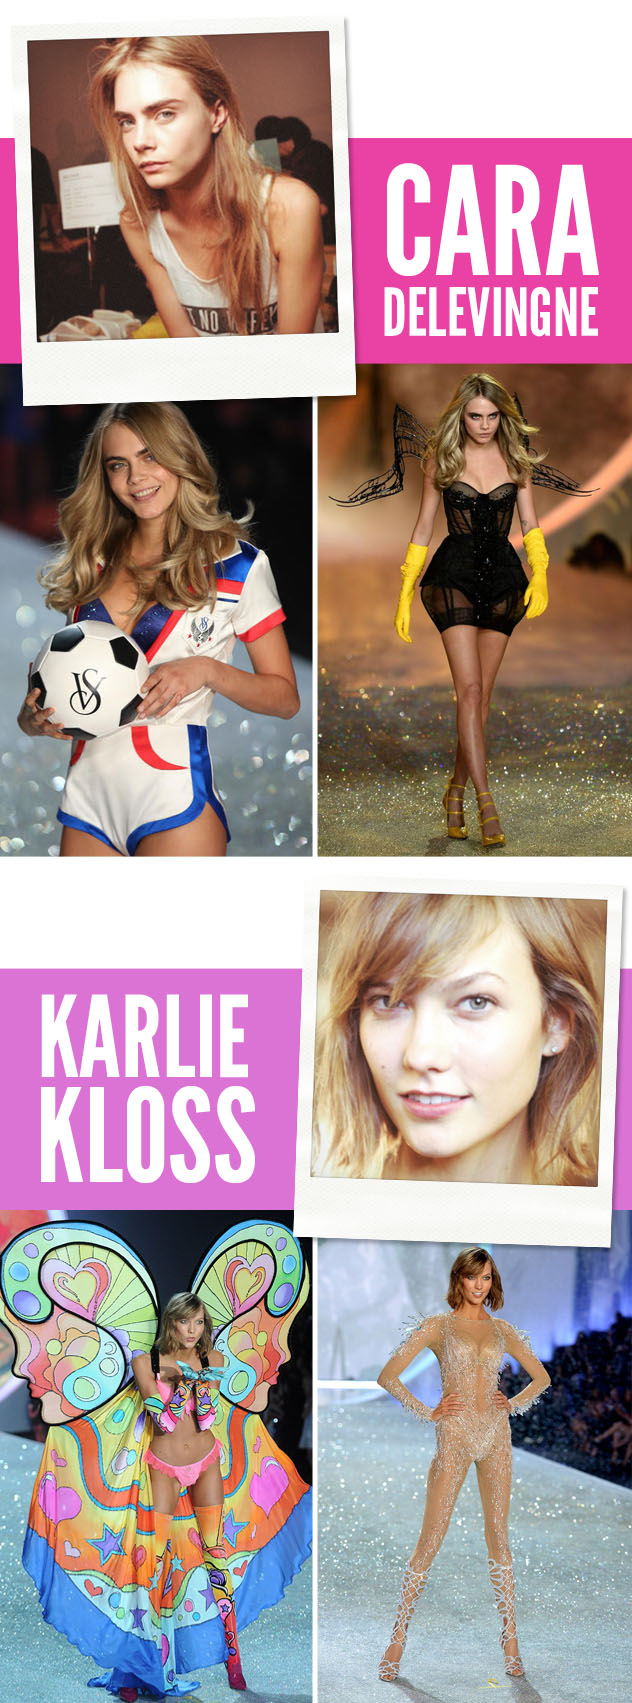 12_9blogpost_VS_cara_karlie